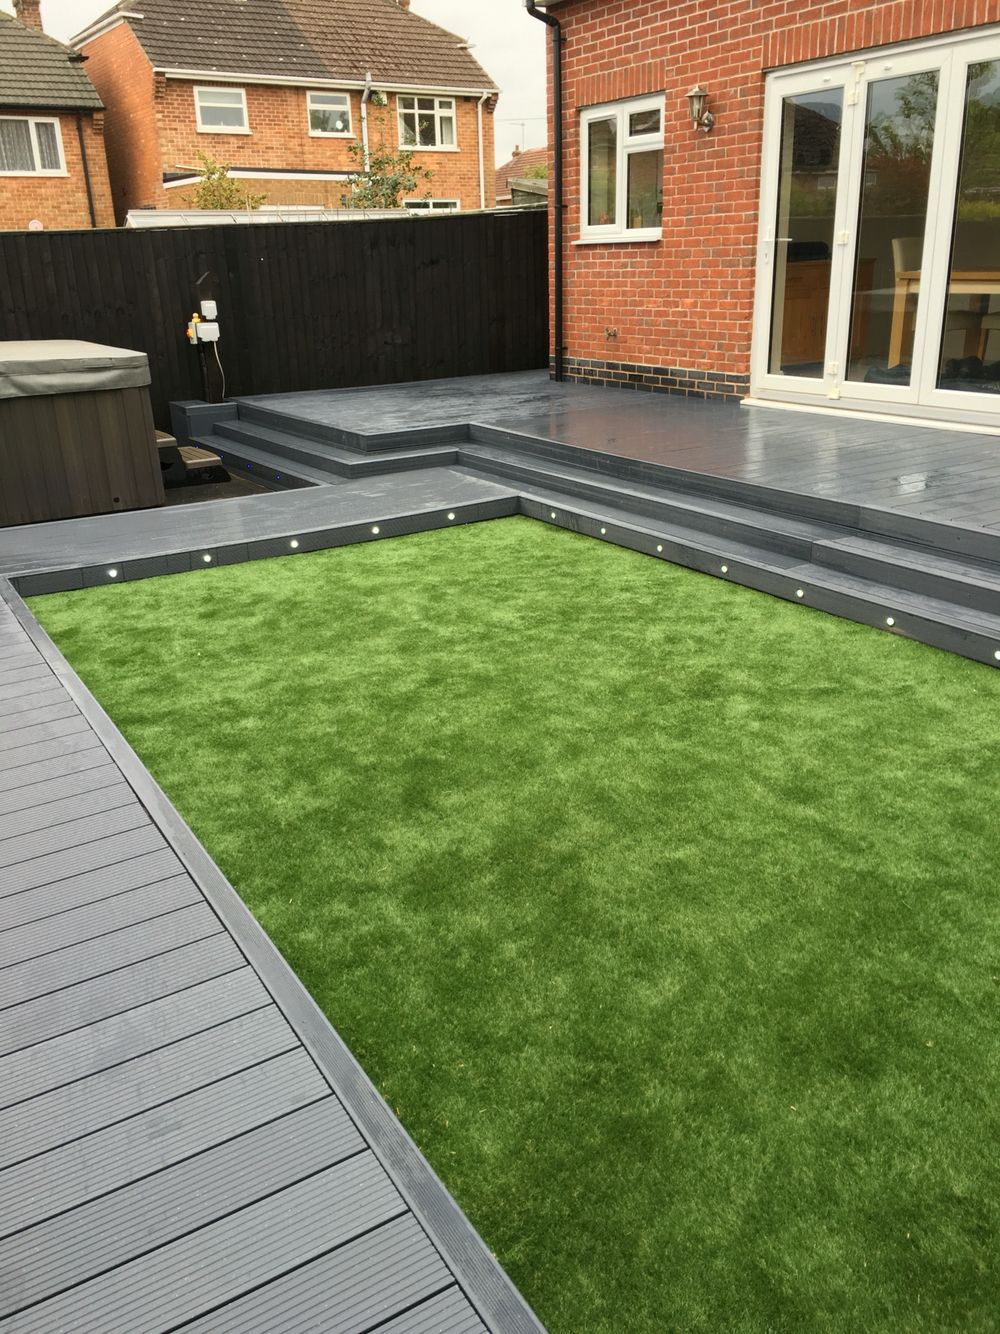 Upm Profi Composite Decking Nicely Paired Together With An